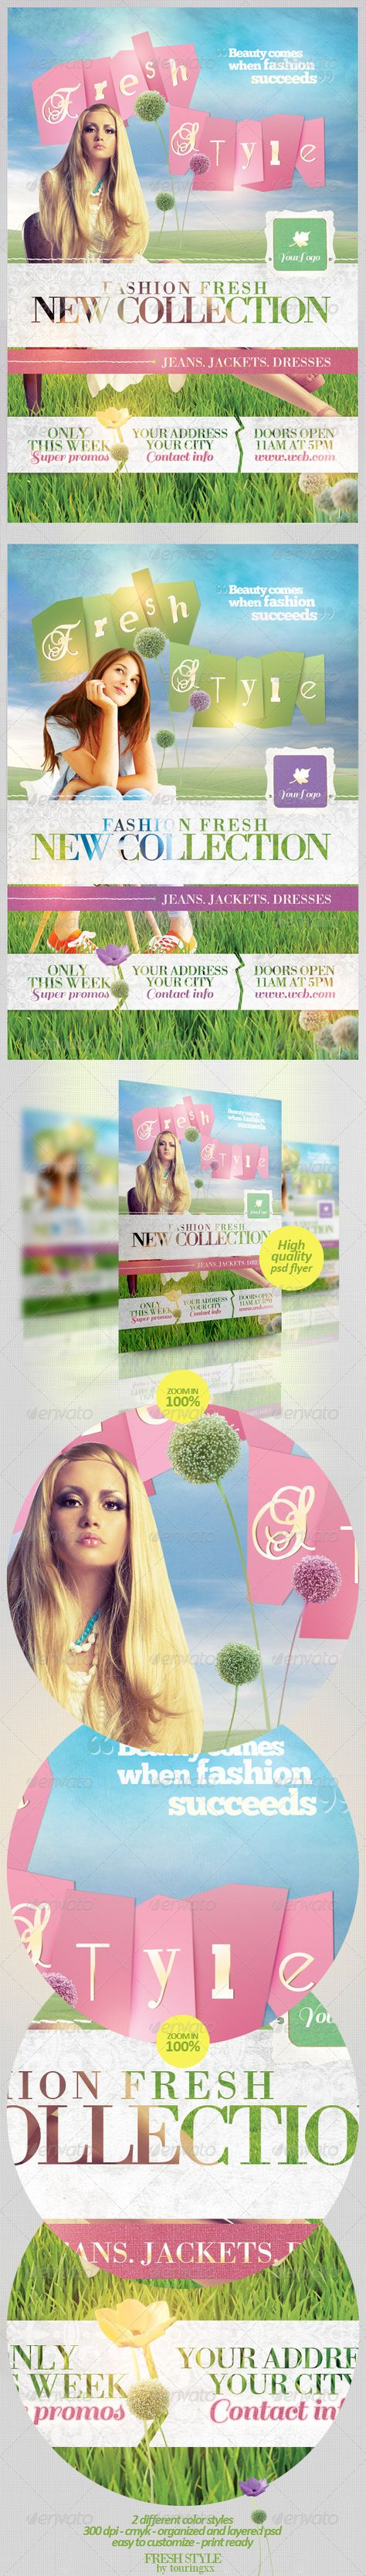 Fresh Style Flyer Template / $6. *** This flyer is perfect for the promotion of Shops/Boutiques, Sales/Promotions, Fashion Shows, New Collections or whatever you want!.***